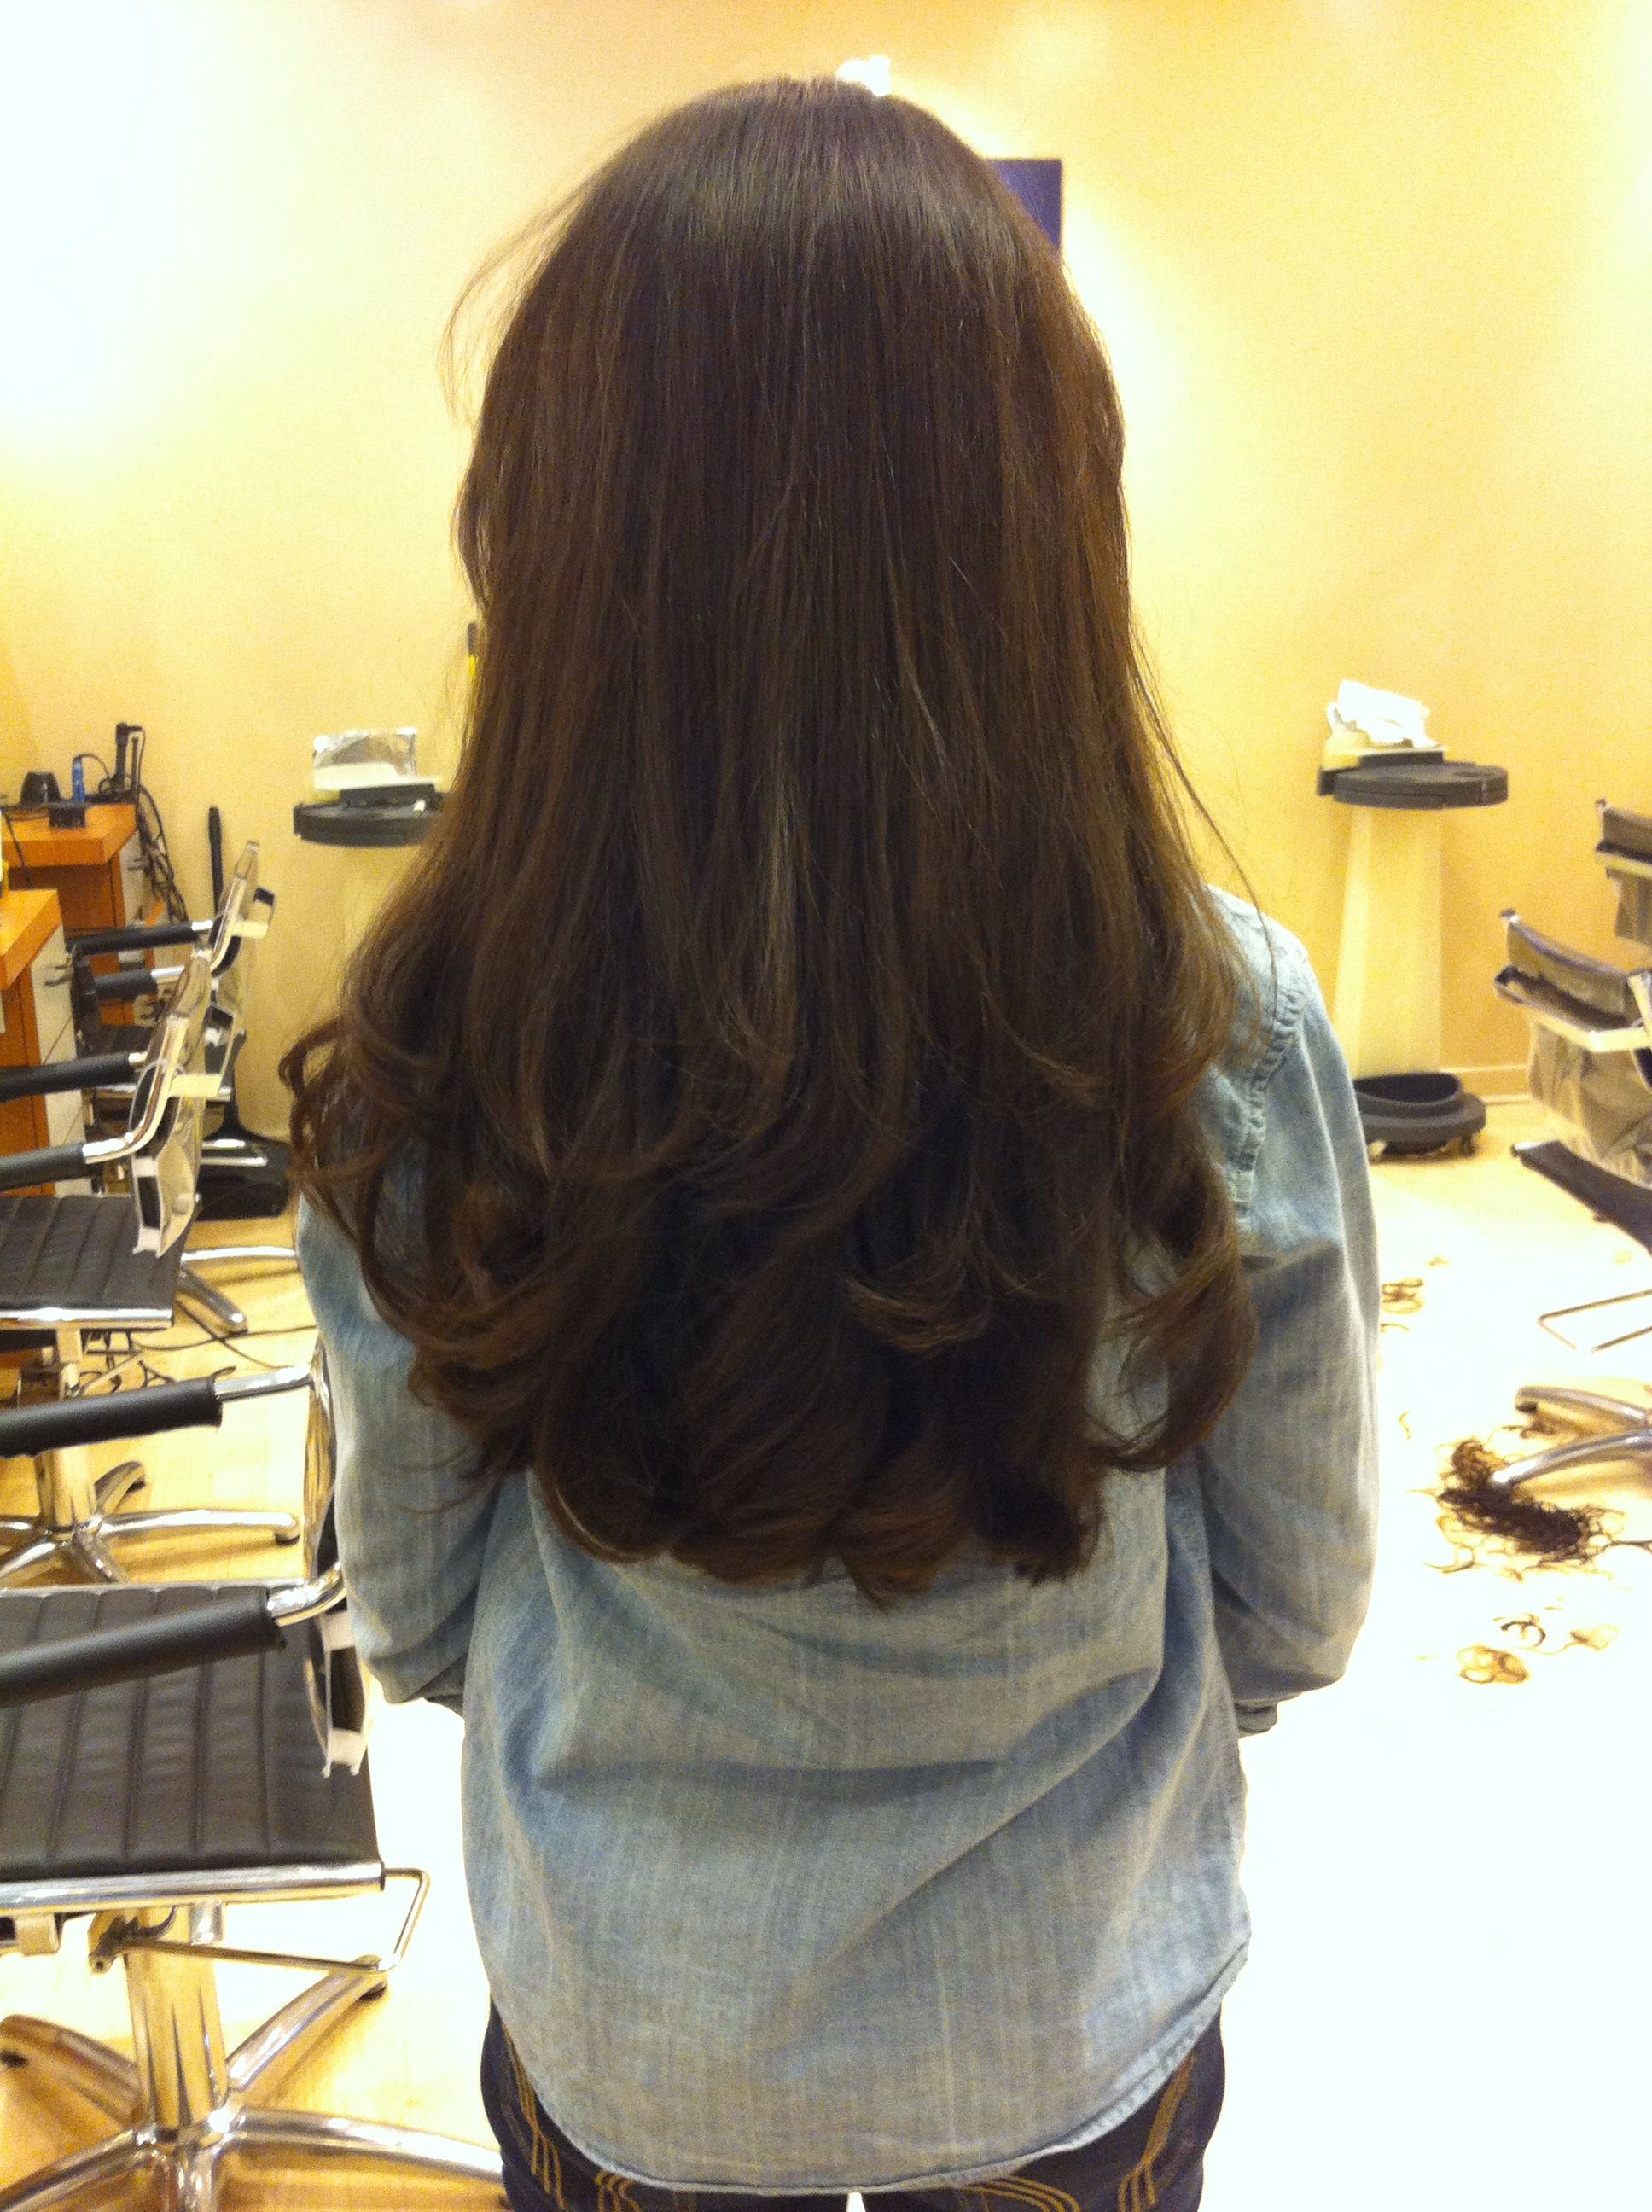 Mid back length with layers. Love my hair! ️ | Hair :) in ...